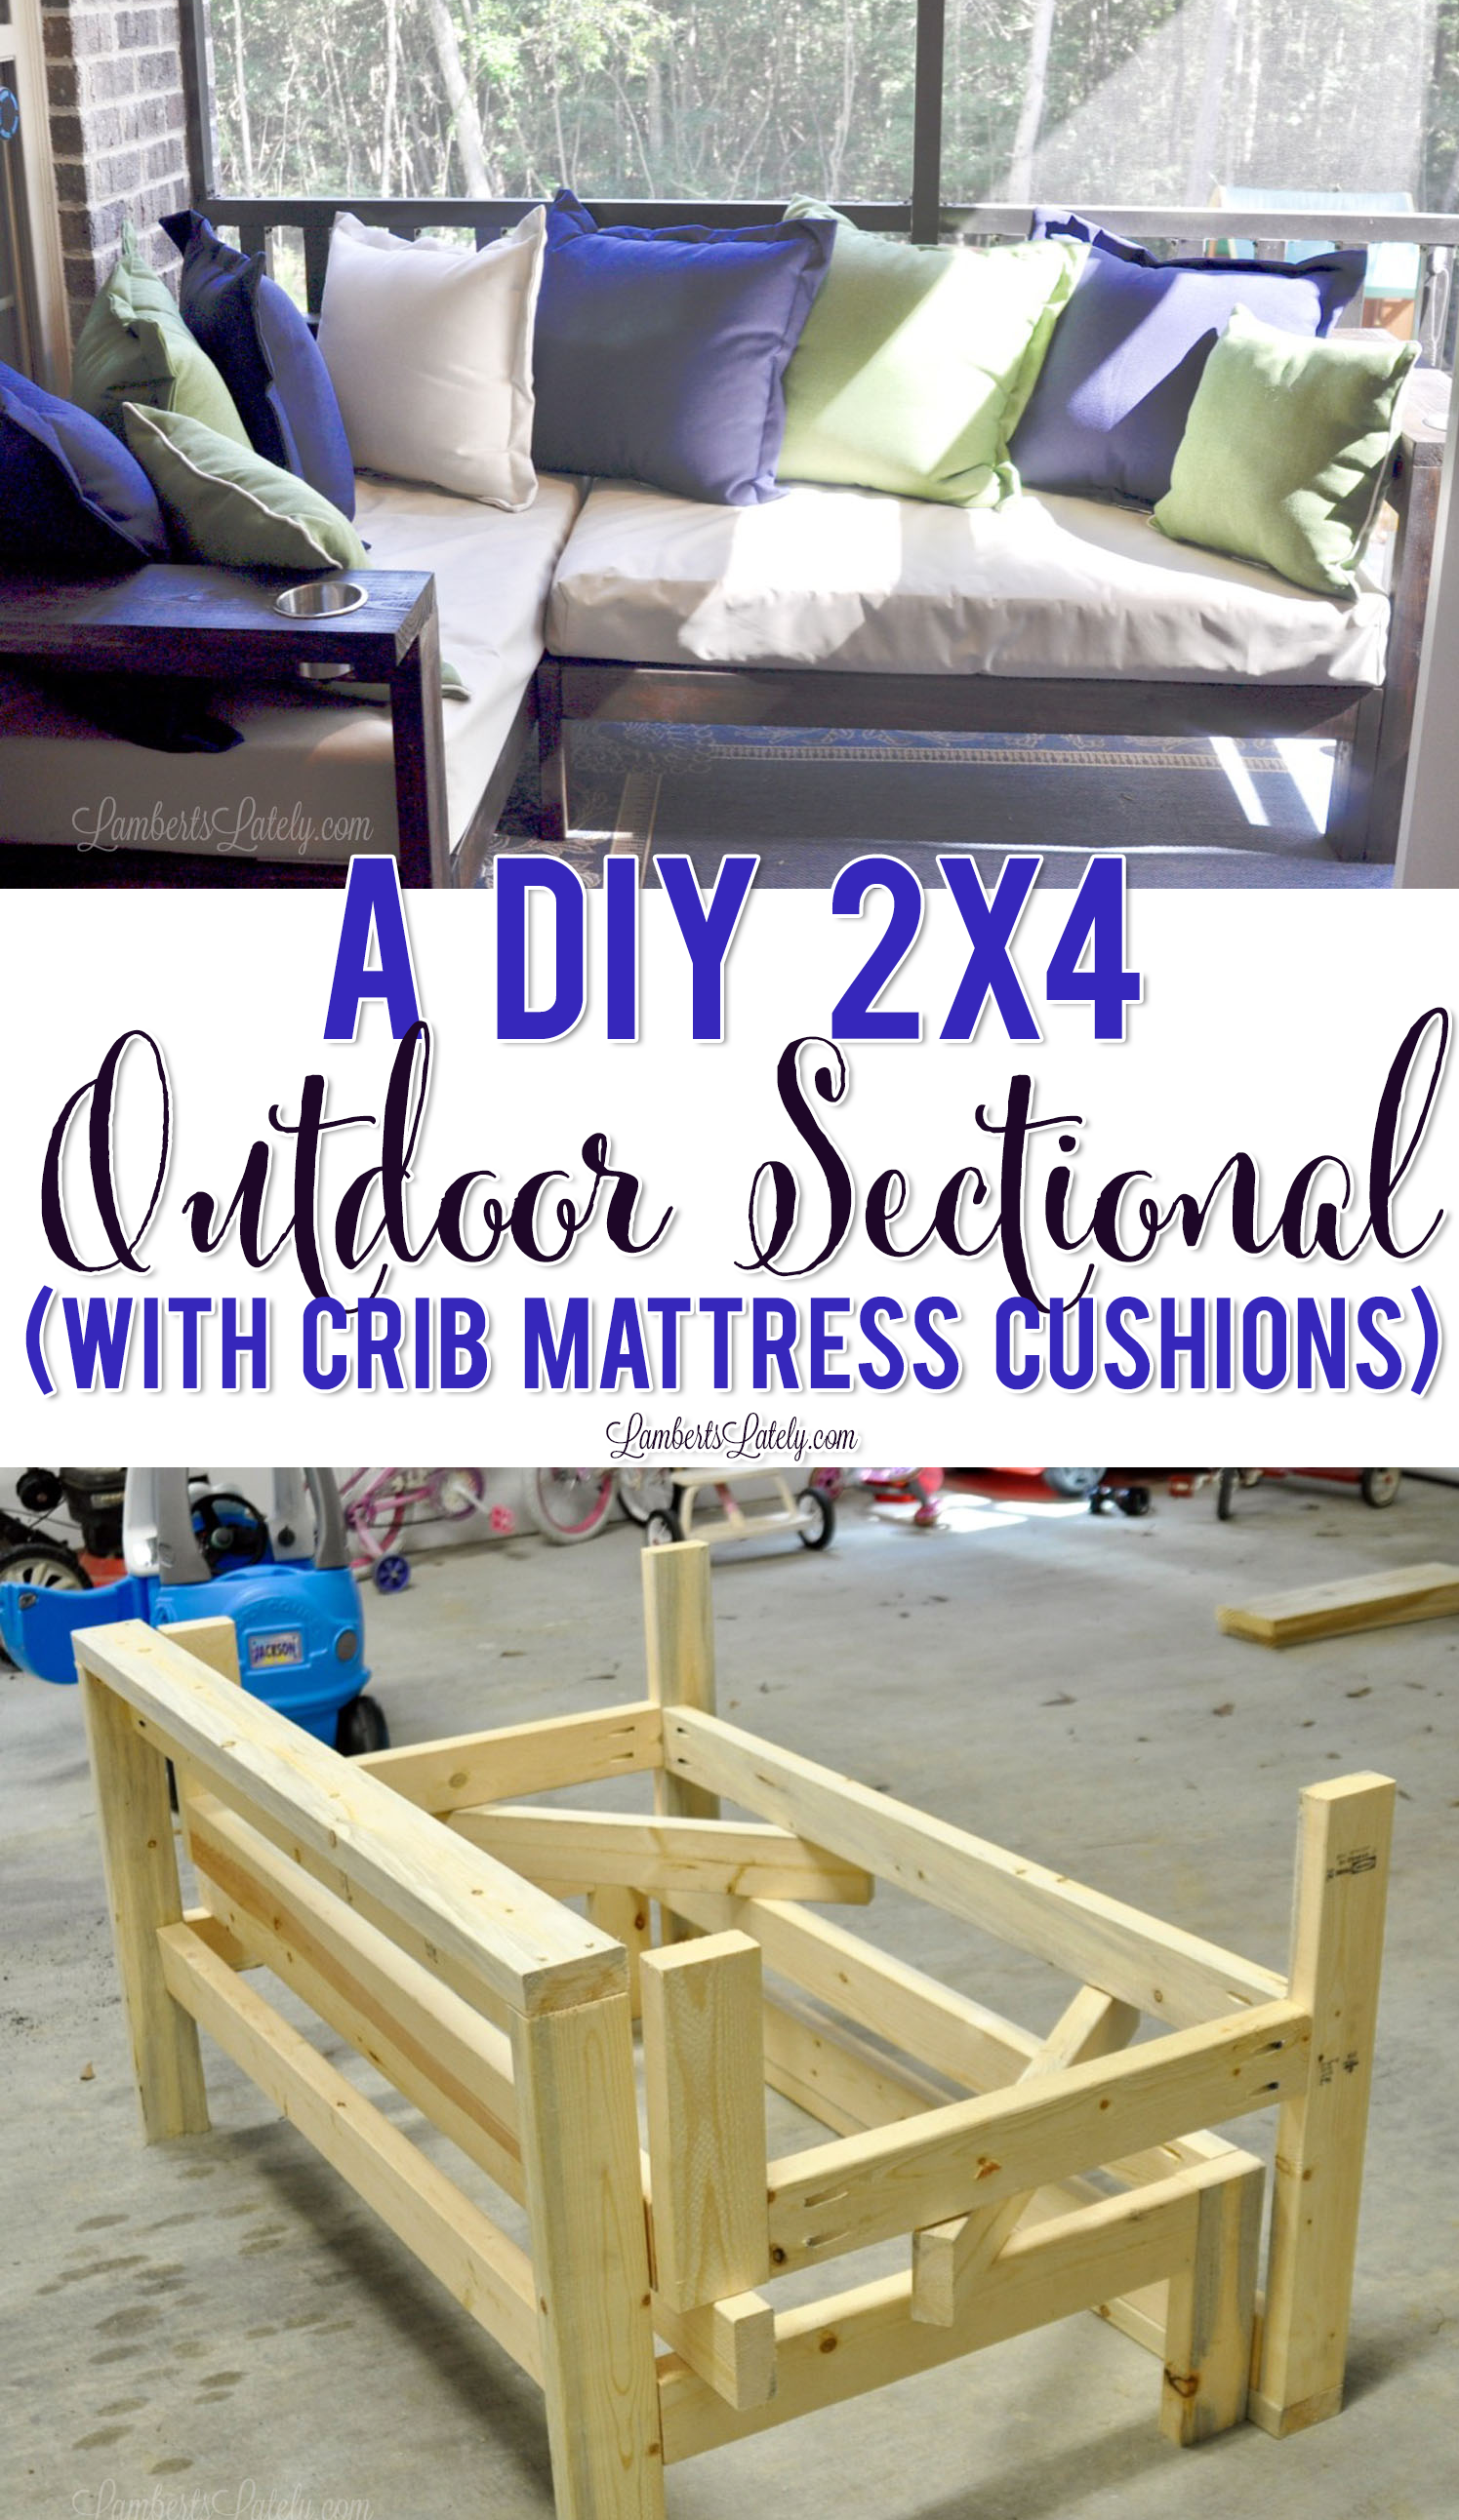 A DIY 2x4 Outdoor Sectional (with Crib Mattress Cushions)